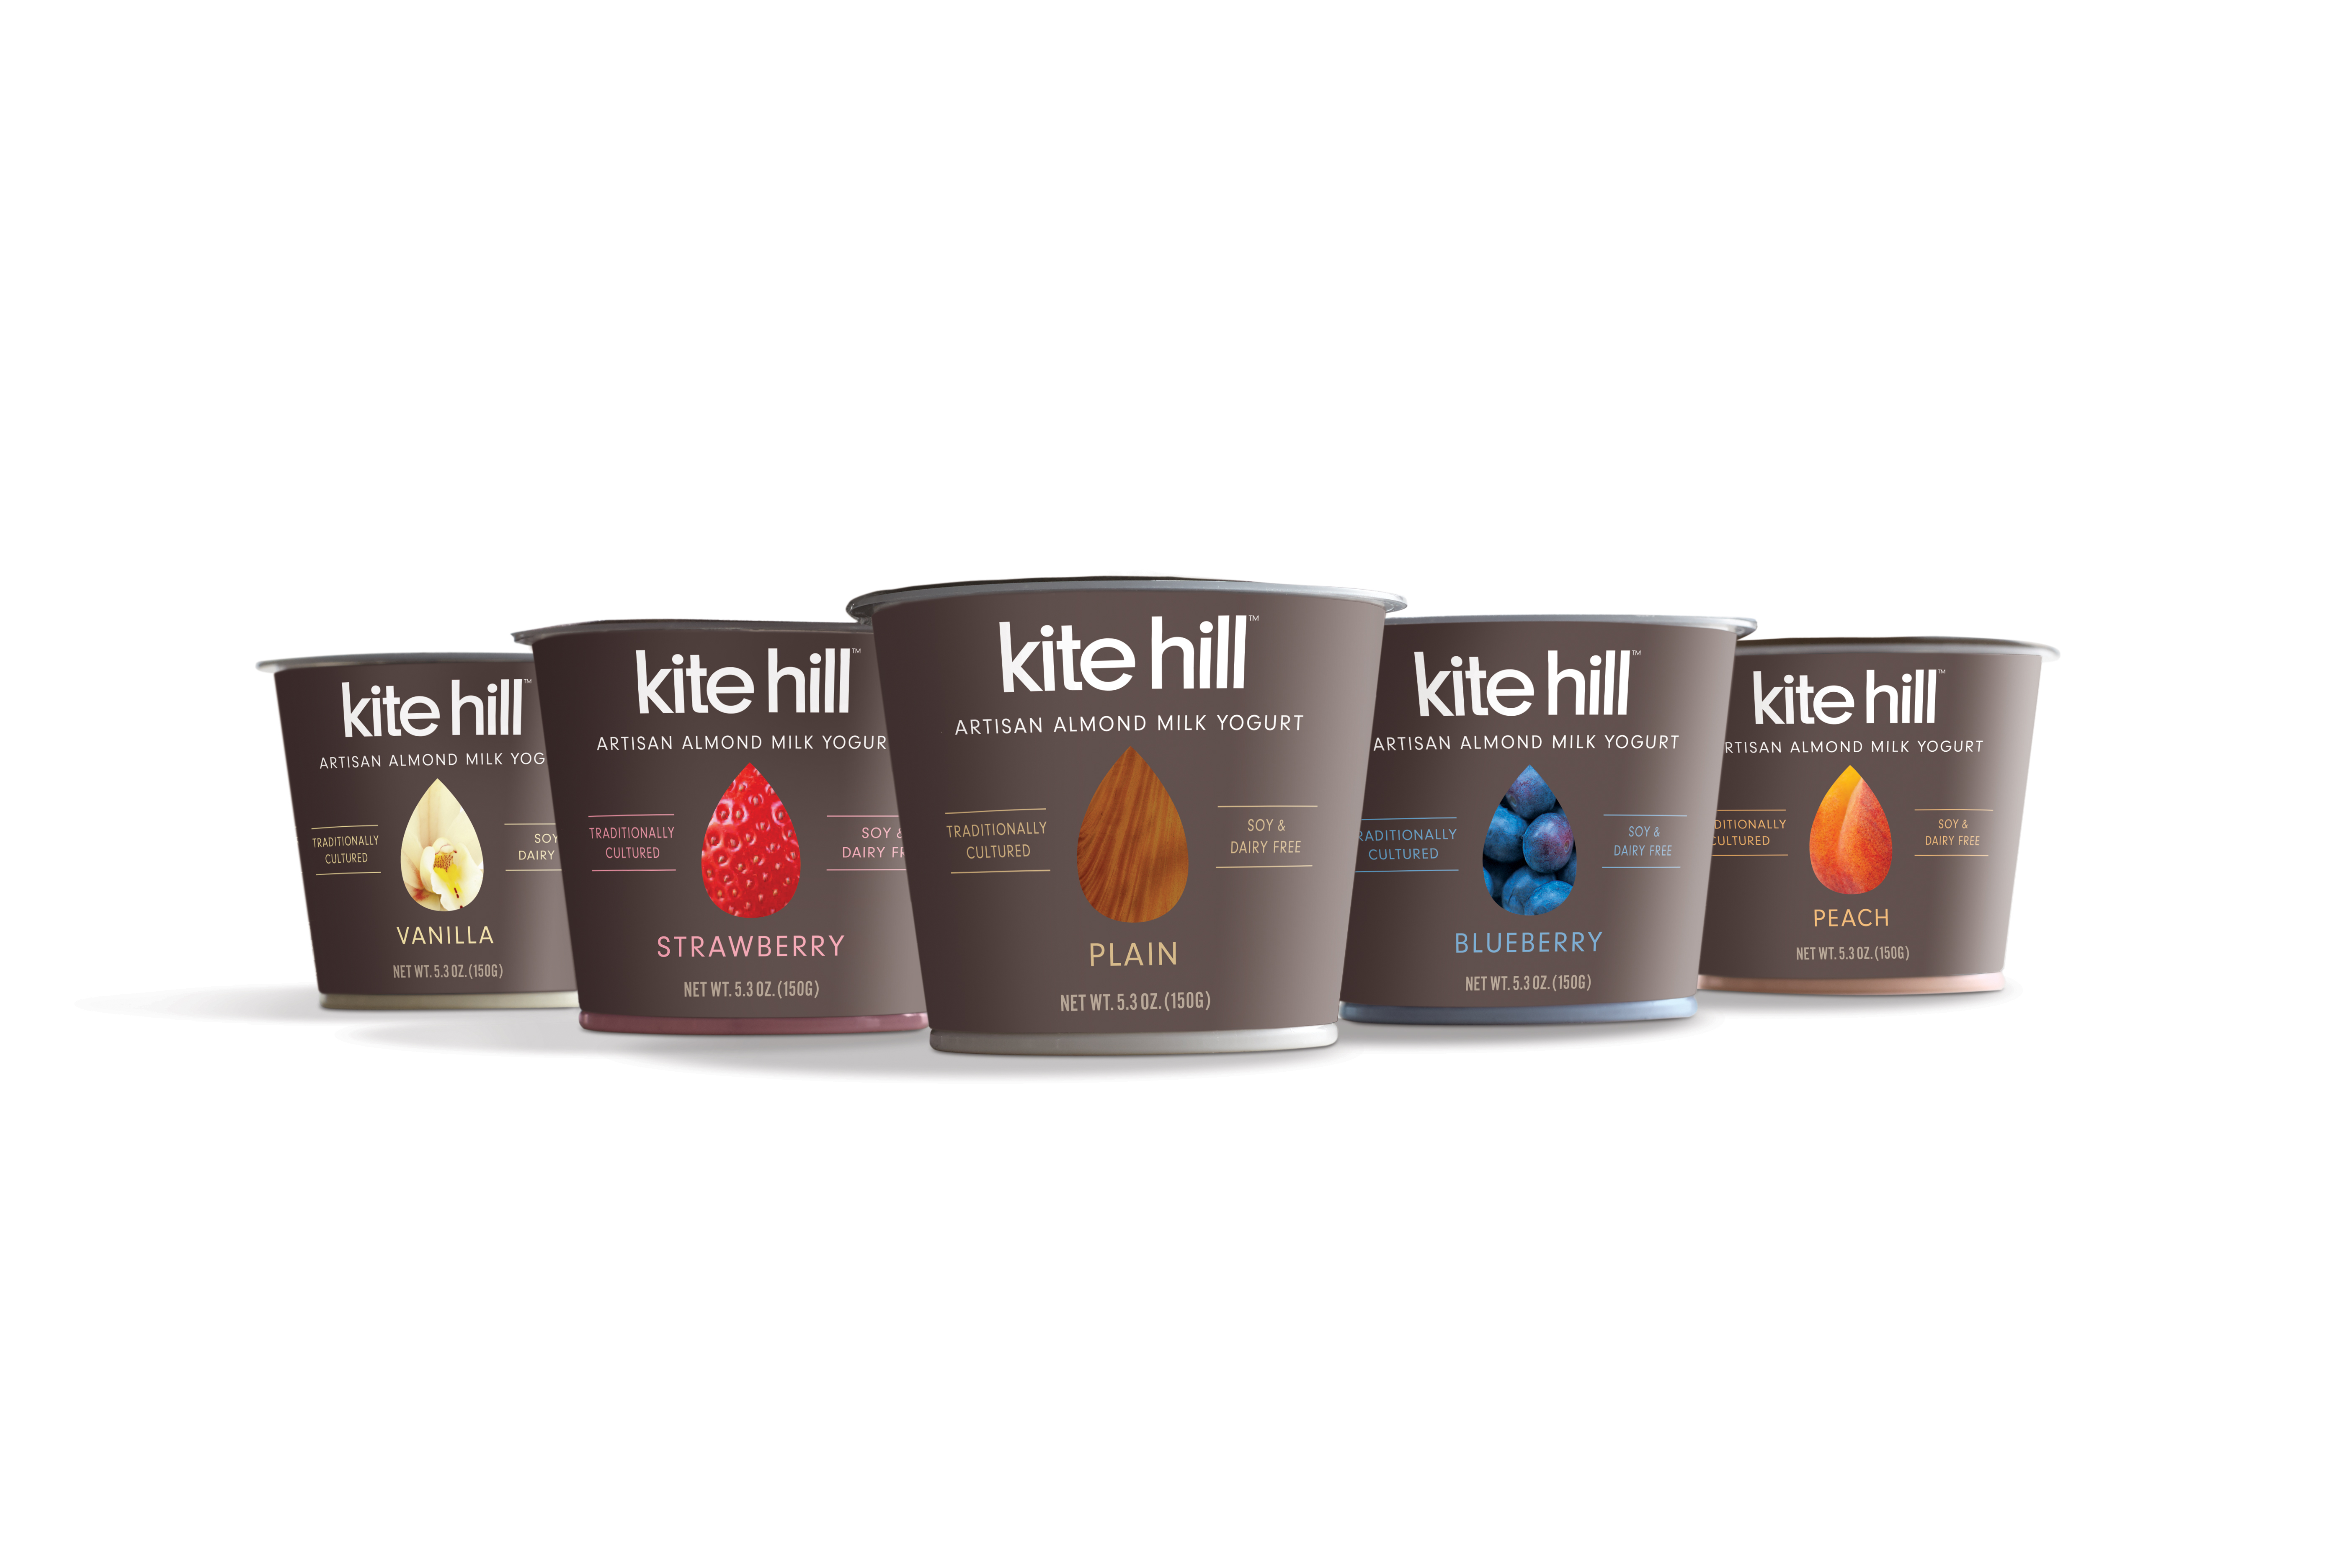 Kite Hill, a maker of nut milk cheeses and yogurts, announced a $18 million fundraising round that was led by General Mills.